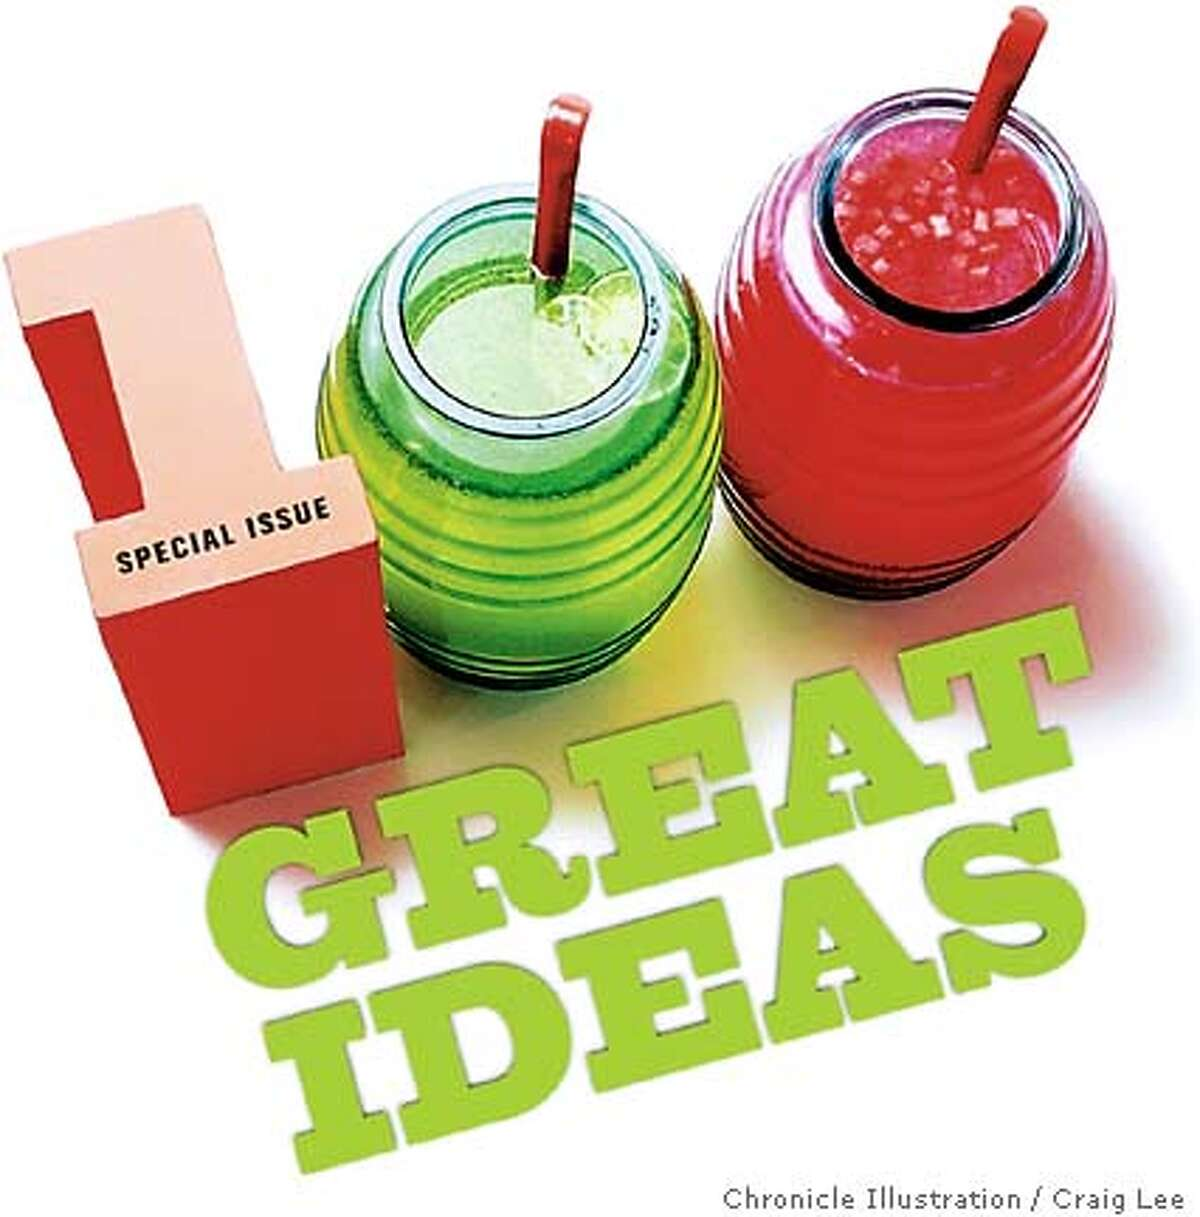 100 Great Ideas. Chronicle illustration by Craig Lee